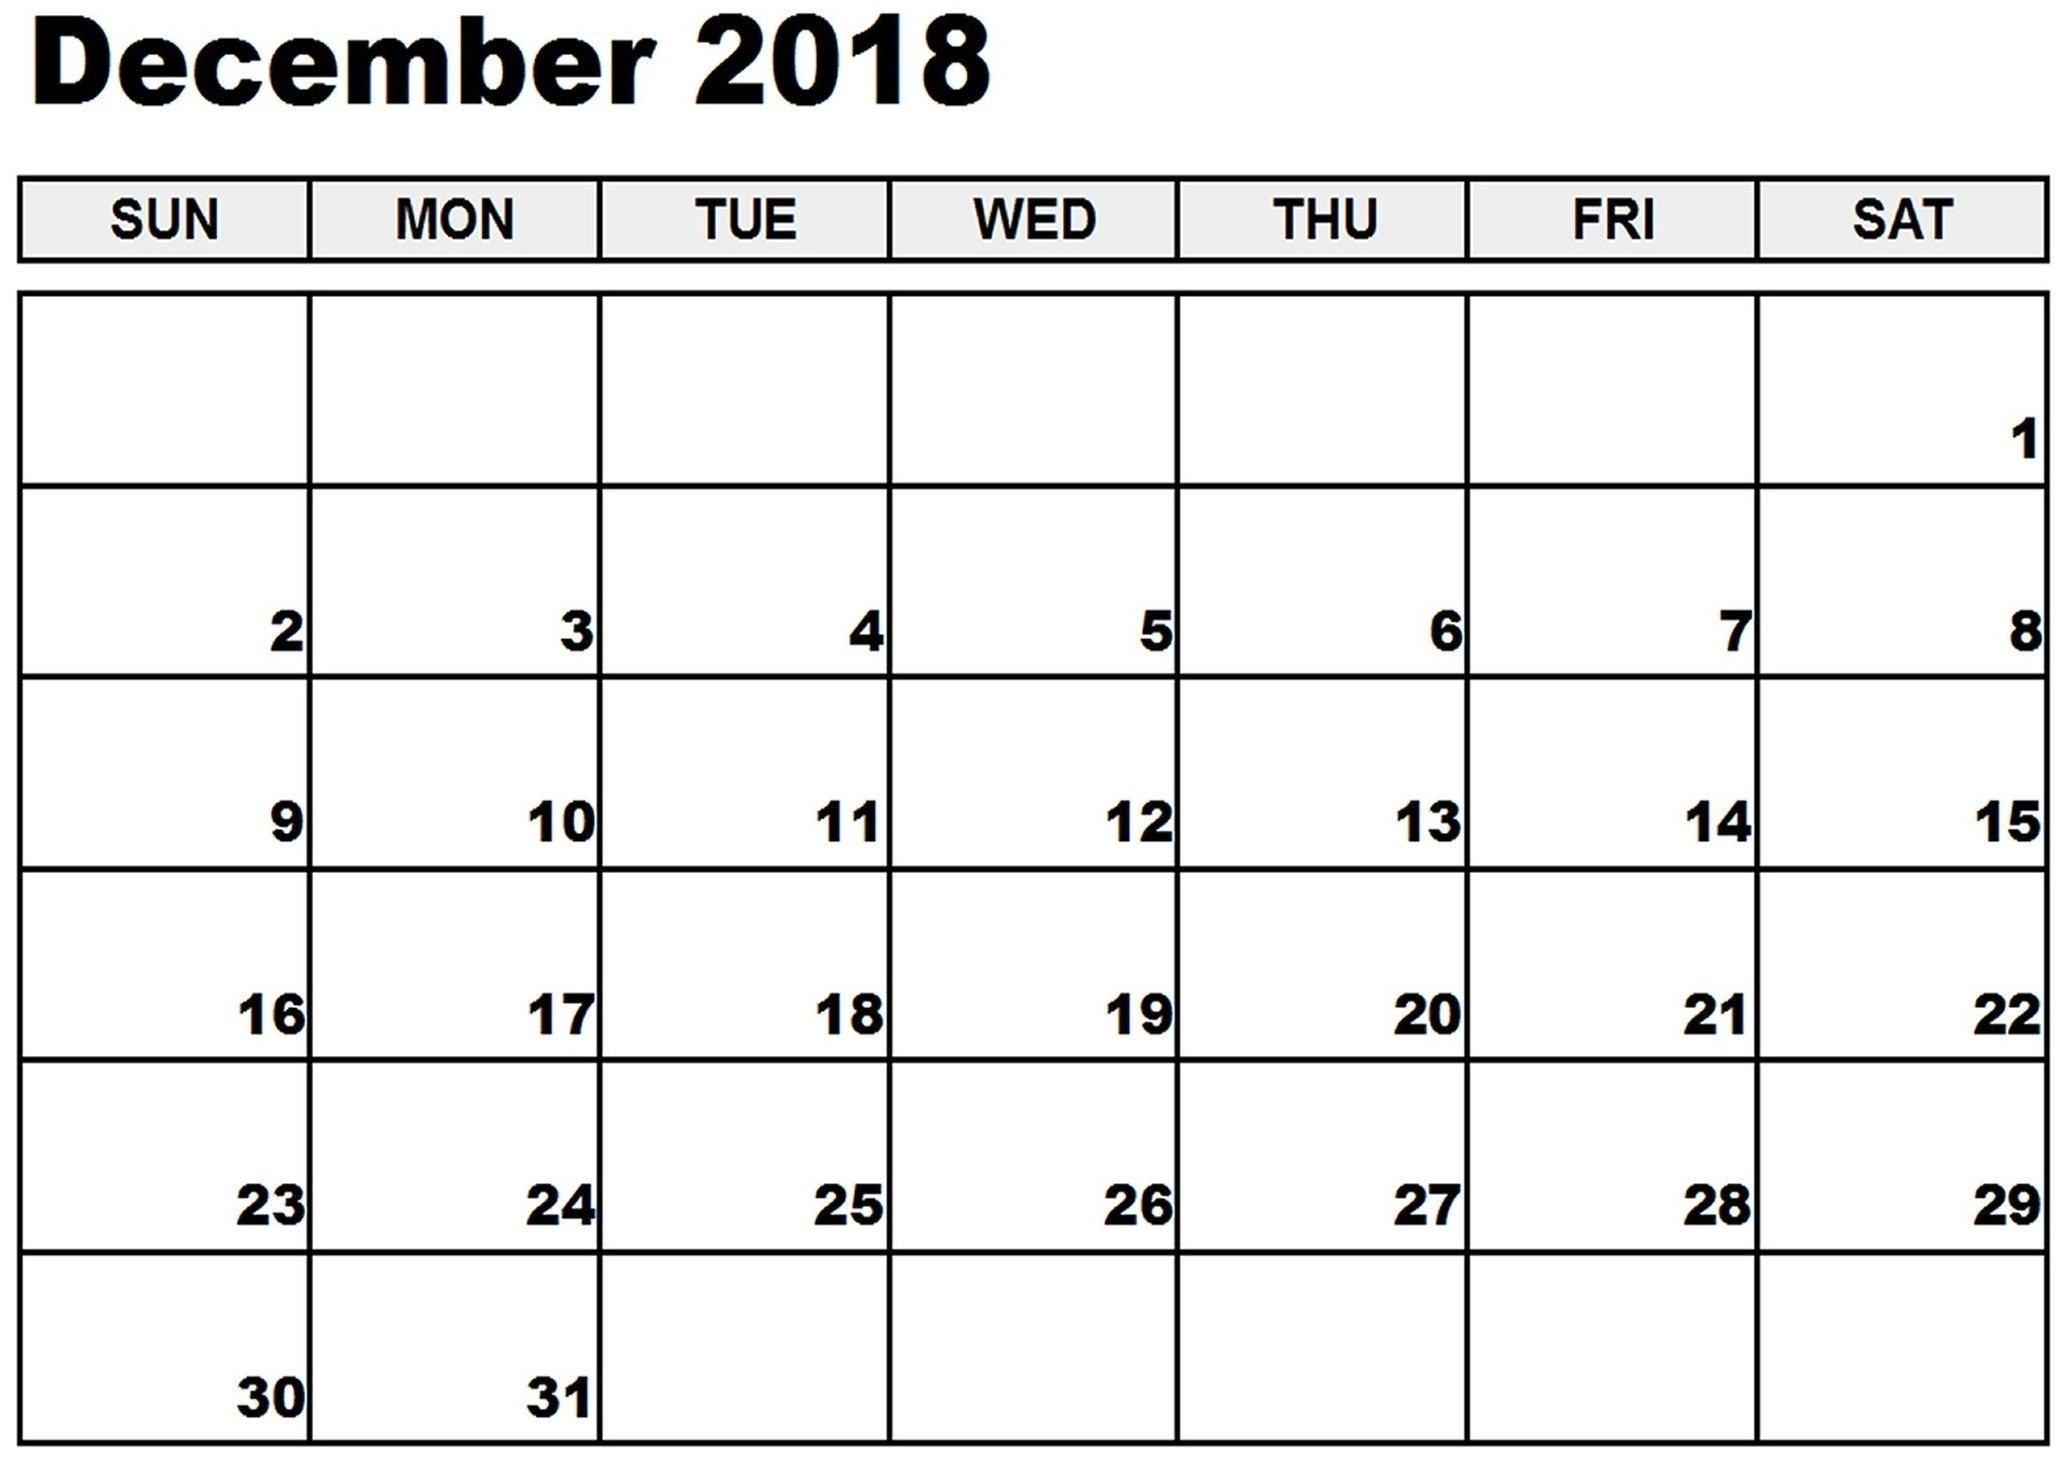 Monthly Calendar Free December 2019 To January 2019 Calendar December 2018 And January 2019 | December 2018 Calendar